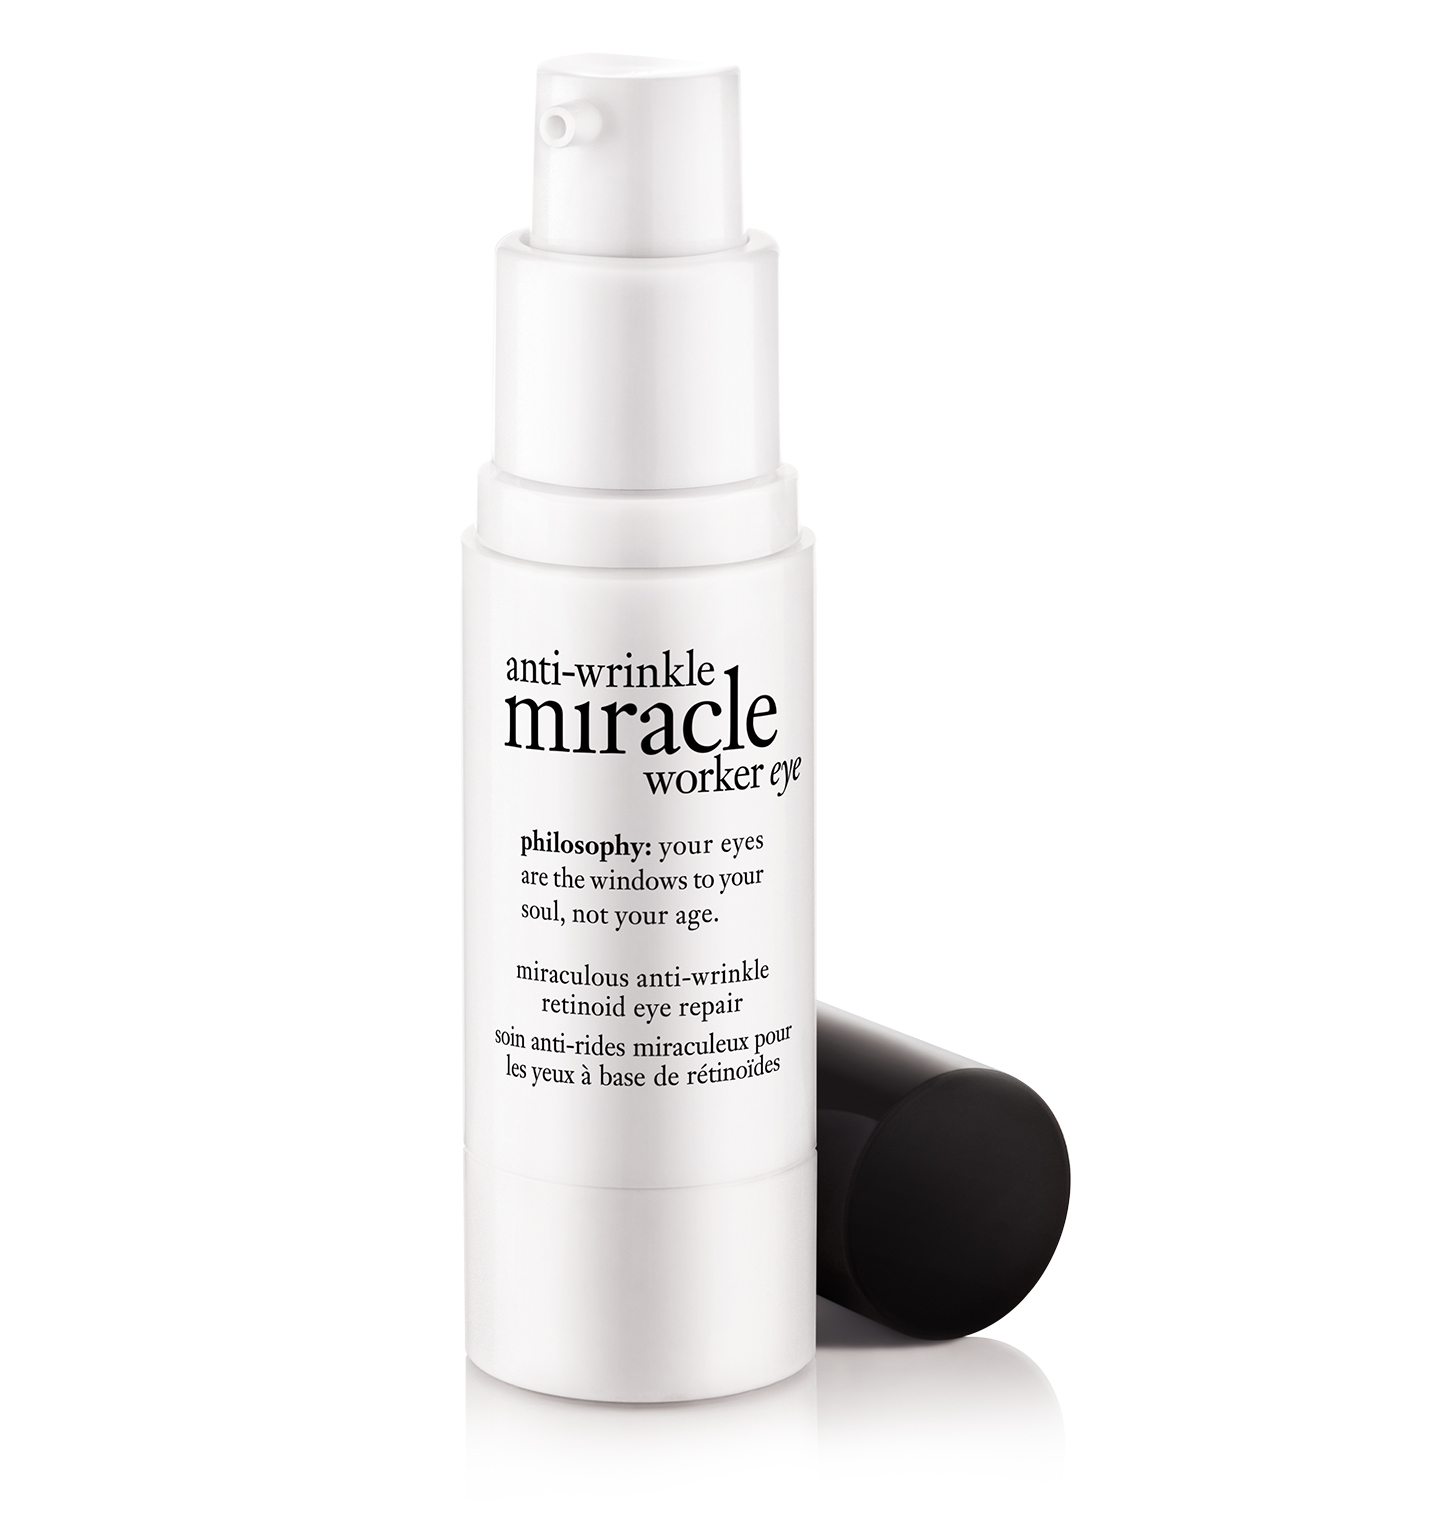 philosophy, anti-wrinkle miracle worker eye